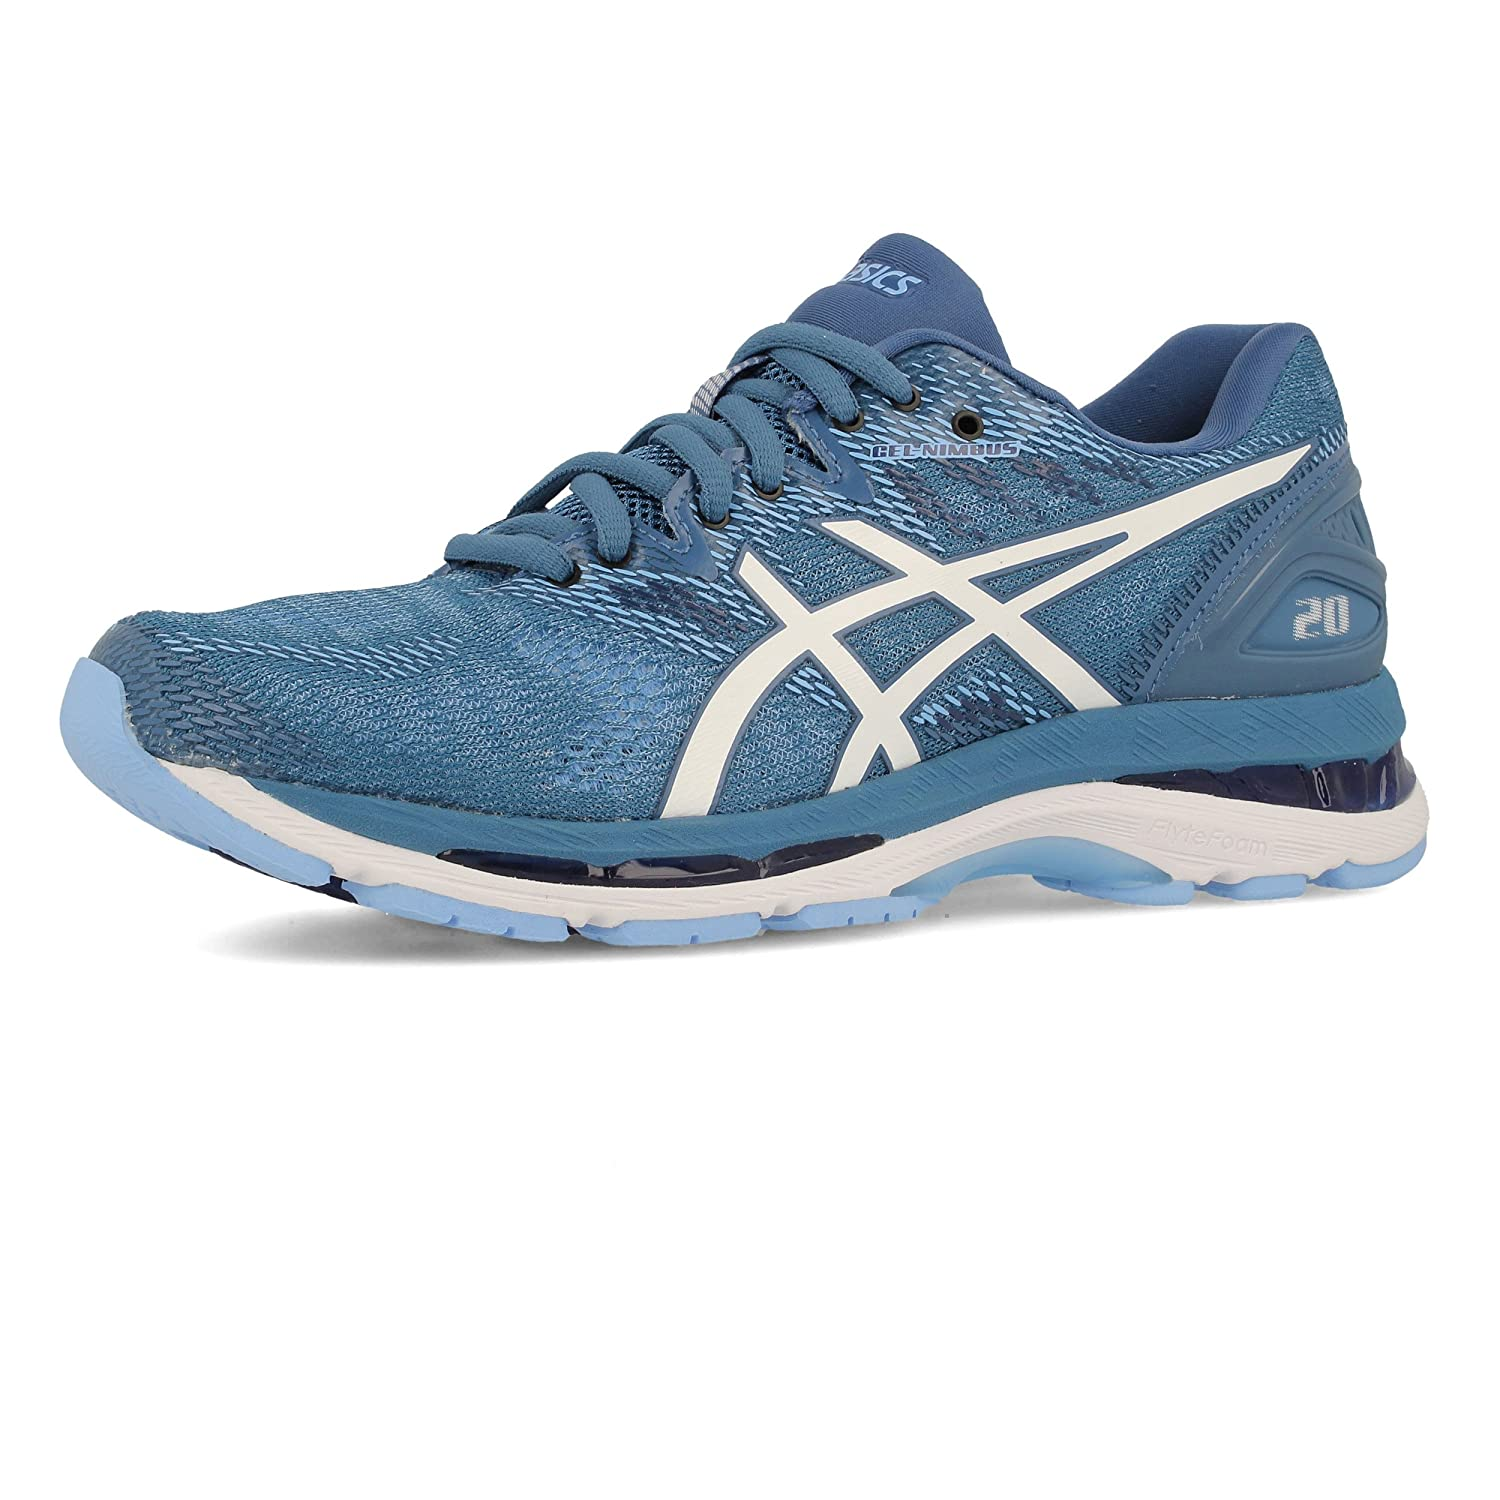 ASICS CLEARANCE Chica